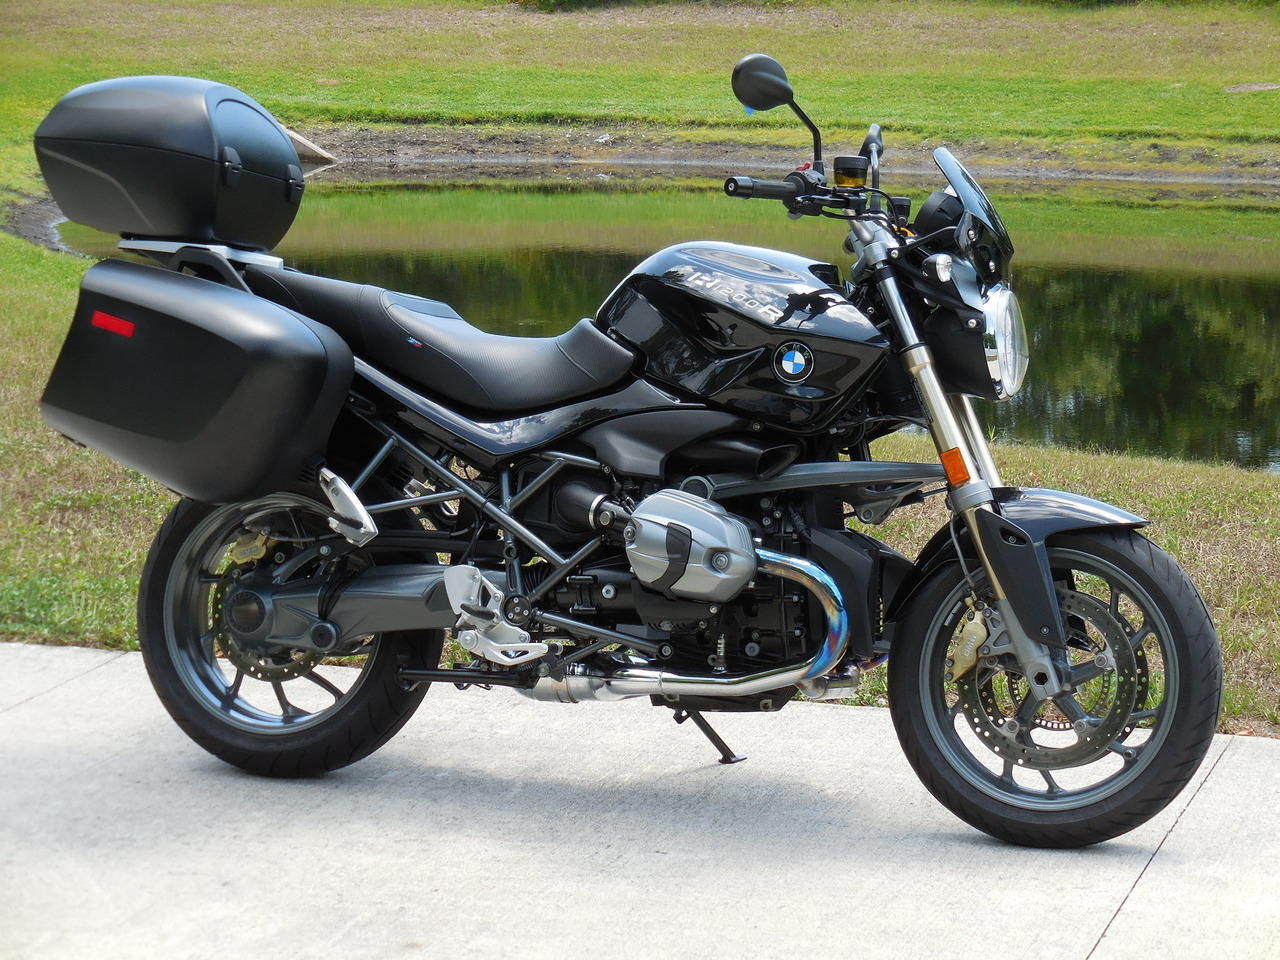 2013 BMW R1200R Sport Touring Motorcycle From Port Orange ...